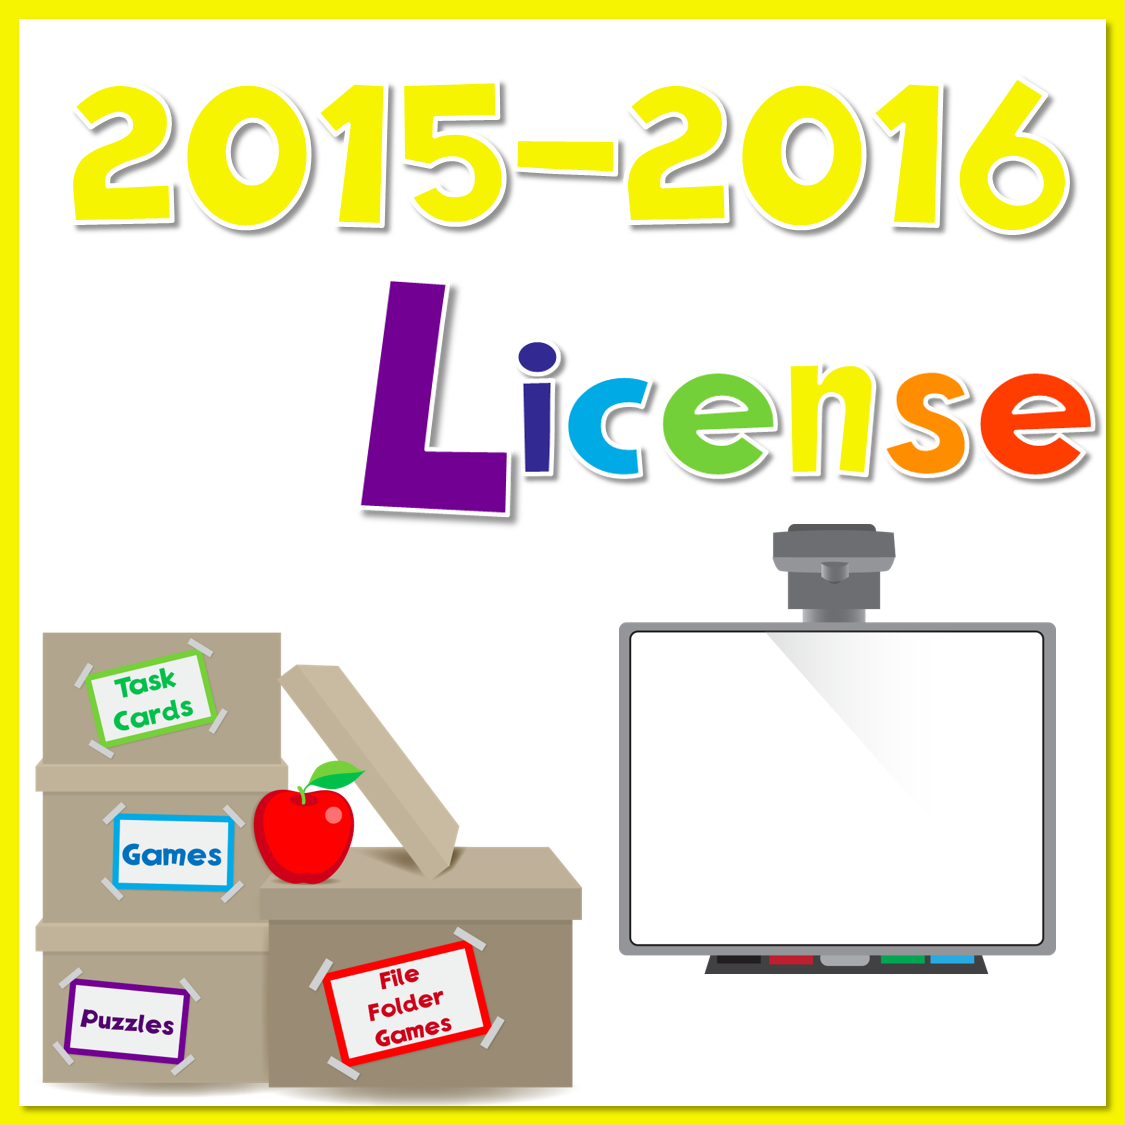 2015-2016 Yearly License